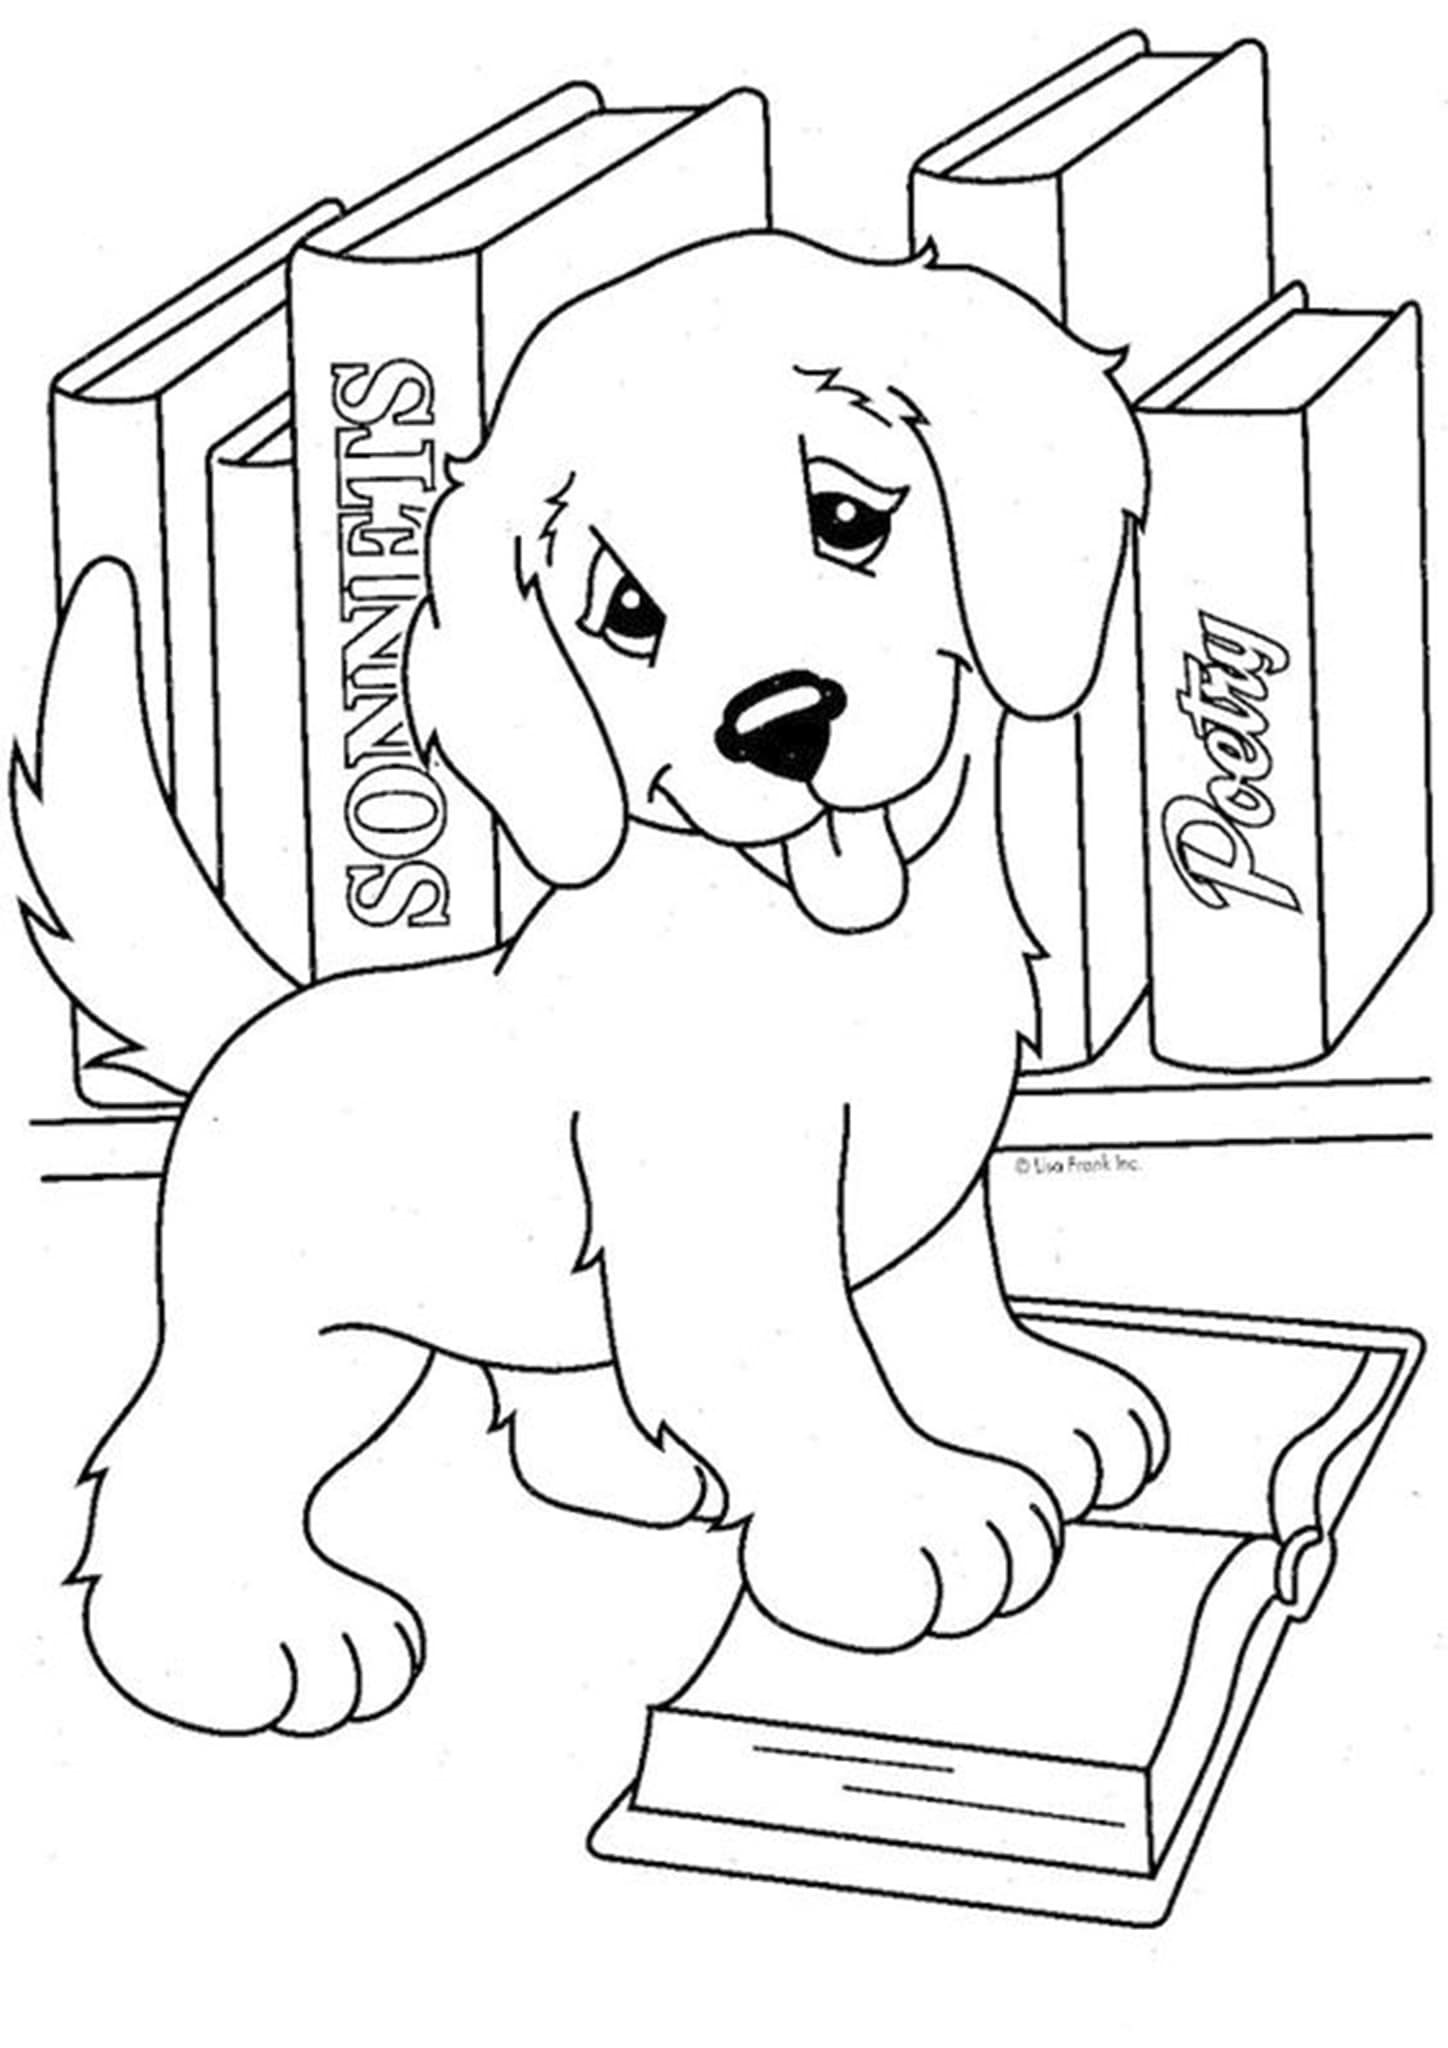 coloring sheets for toddler disney babies coloring pages 5 disneyclipscom for coloring sheets toddler